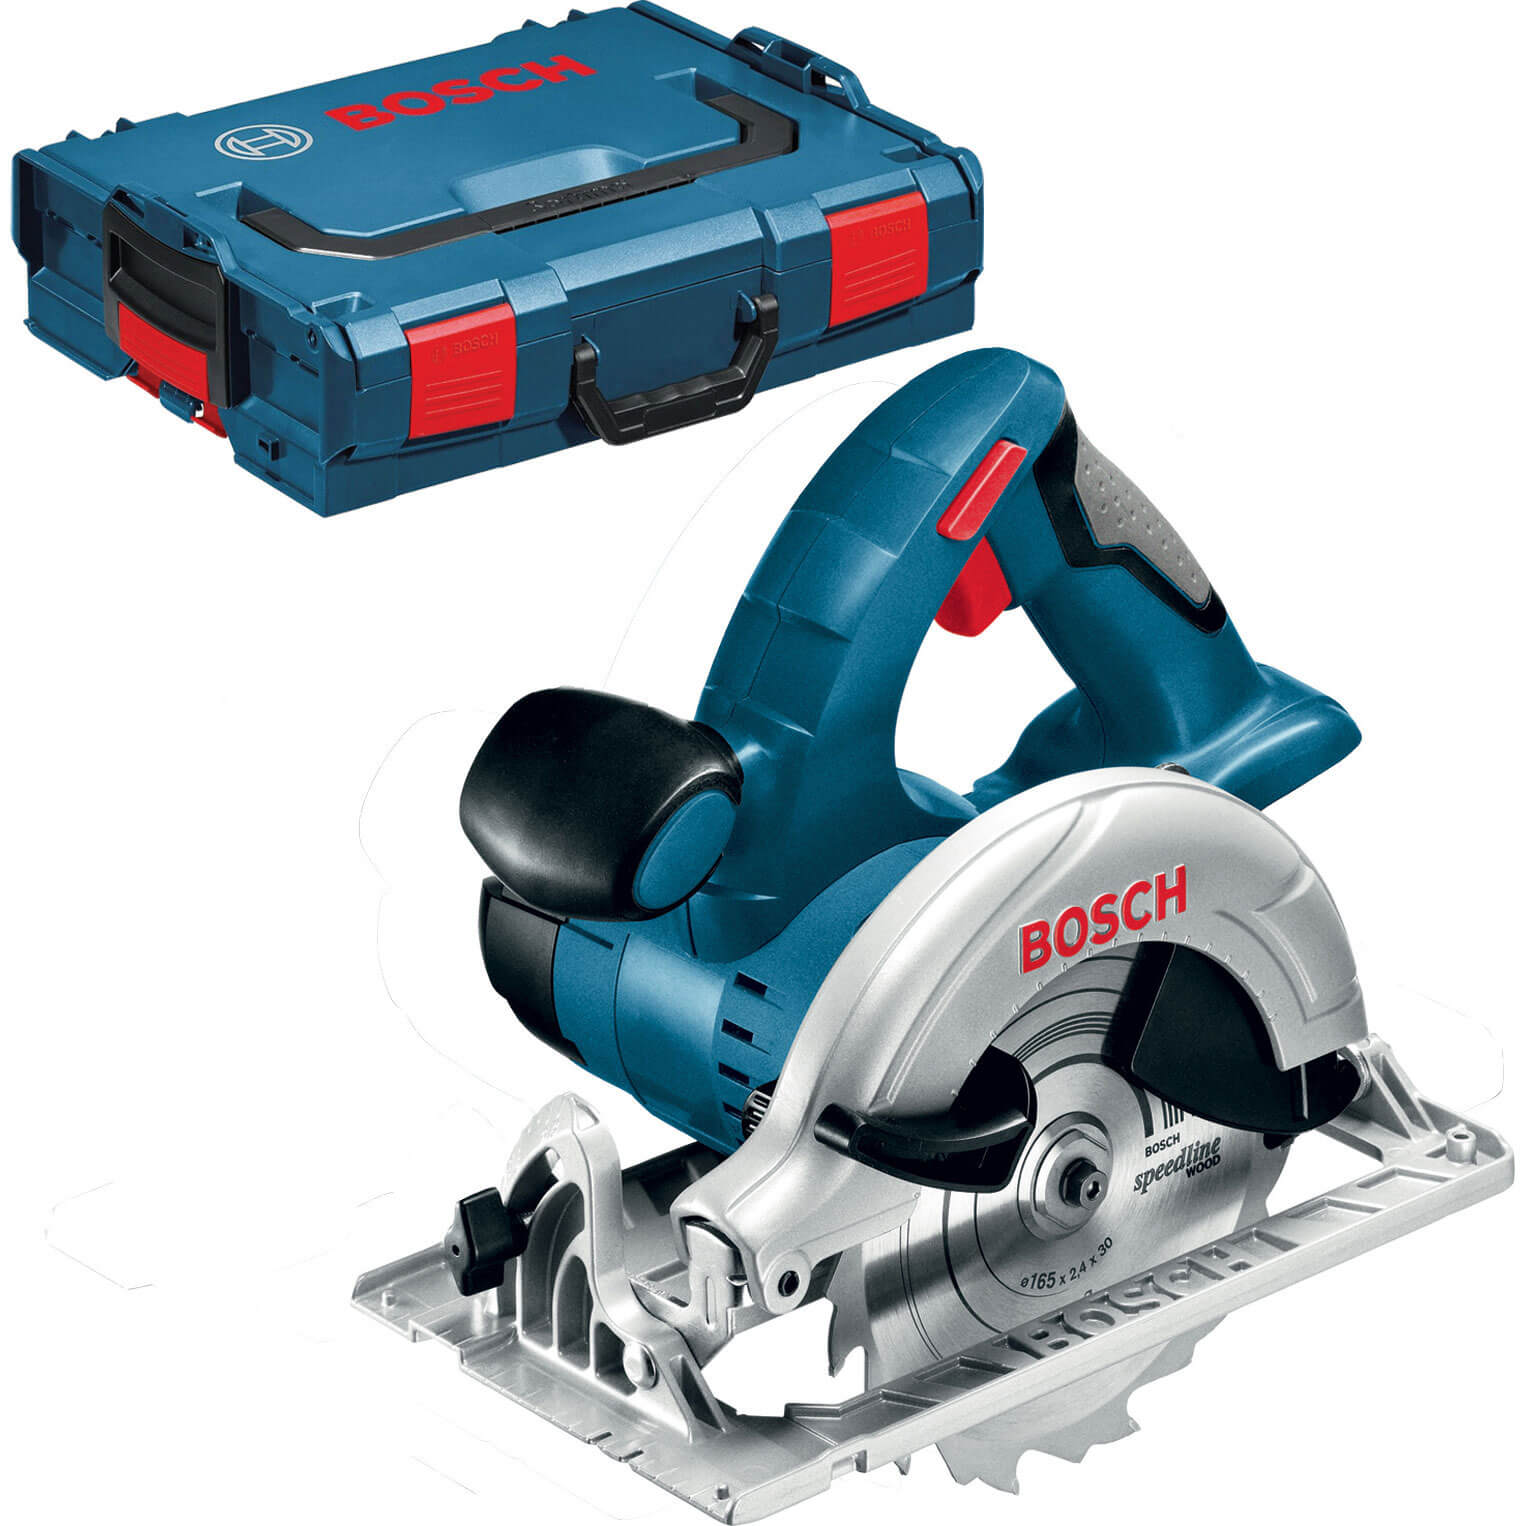 Image of Bosch GKS 18 V-LI Cordless Circular Saw No Batteries No Charger Case